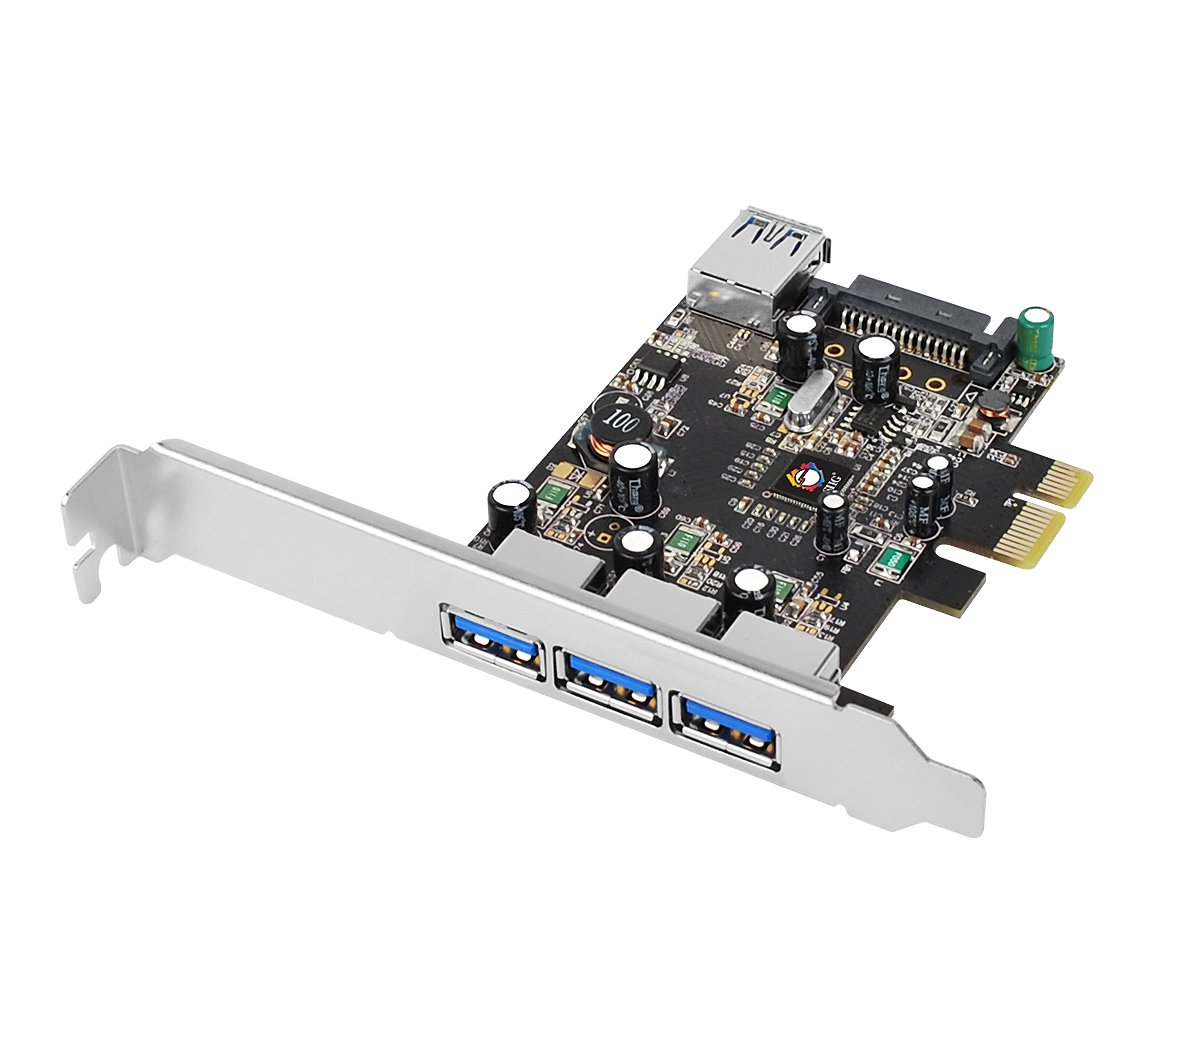 SIIG Legacy & Beyond JU-P40611-S2 Superspeed DP 4 Ports PCI-e to USB 3.0 High Performance Adapter Card With 15Pin SATA Power, 3x9-pin External and 1x9-pin Internal Connector